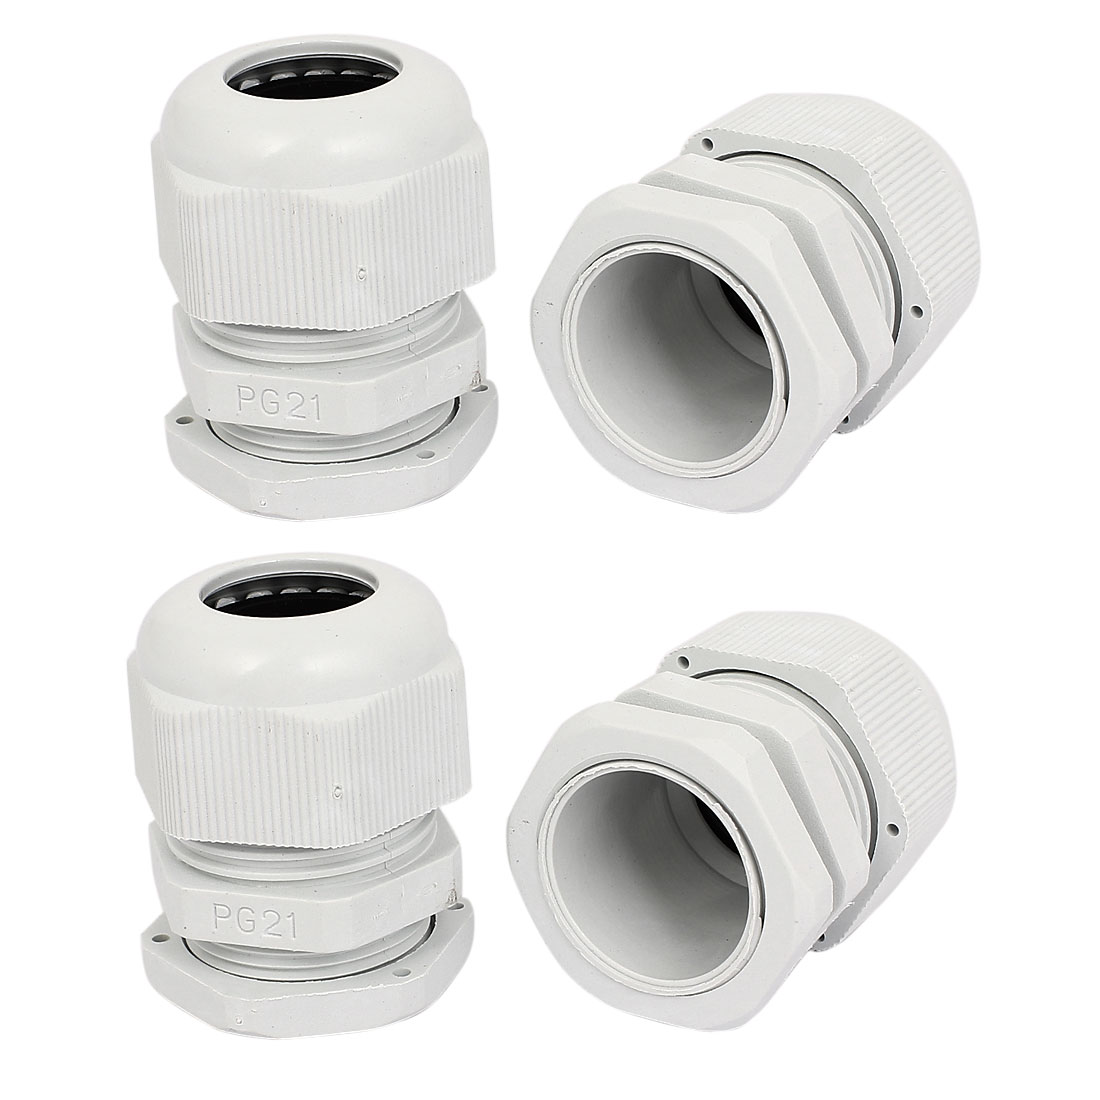 4Pcs PG21 Compression Waterproof Stuffing 16-21mm Cable Glands White